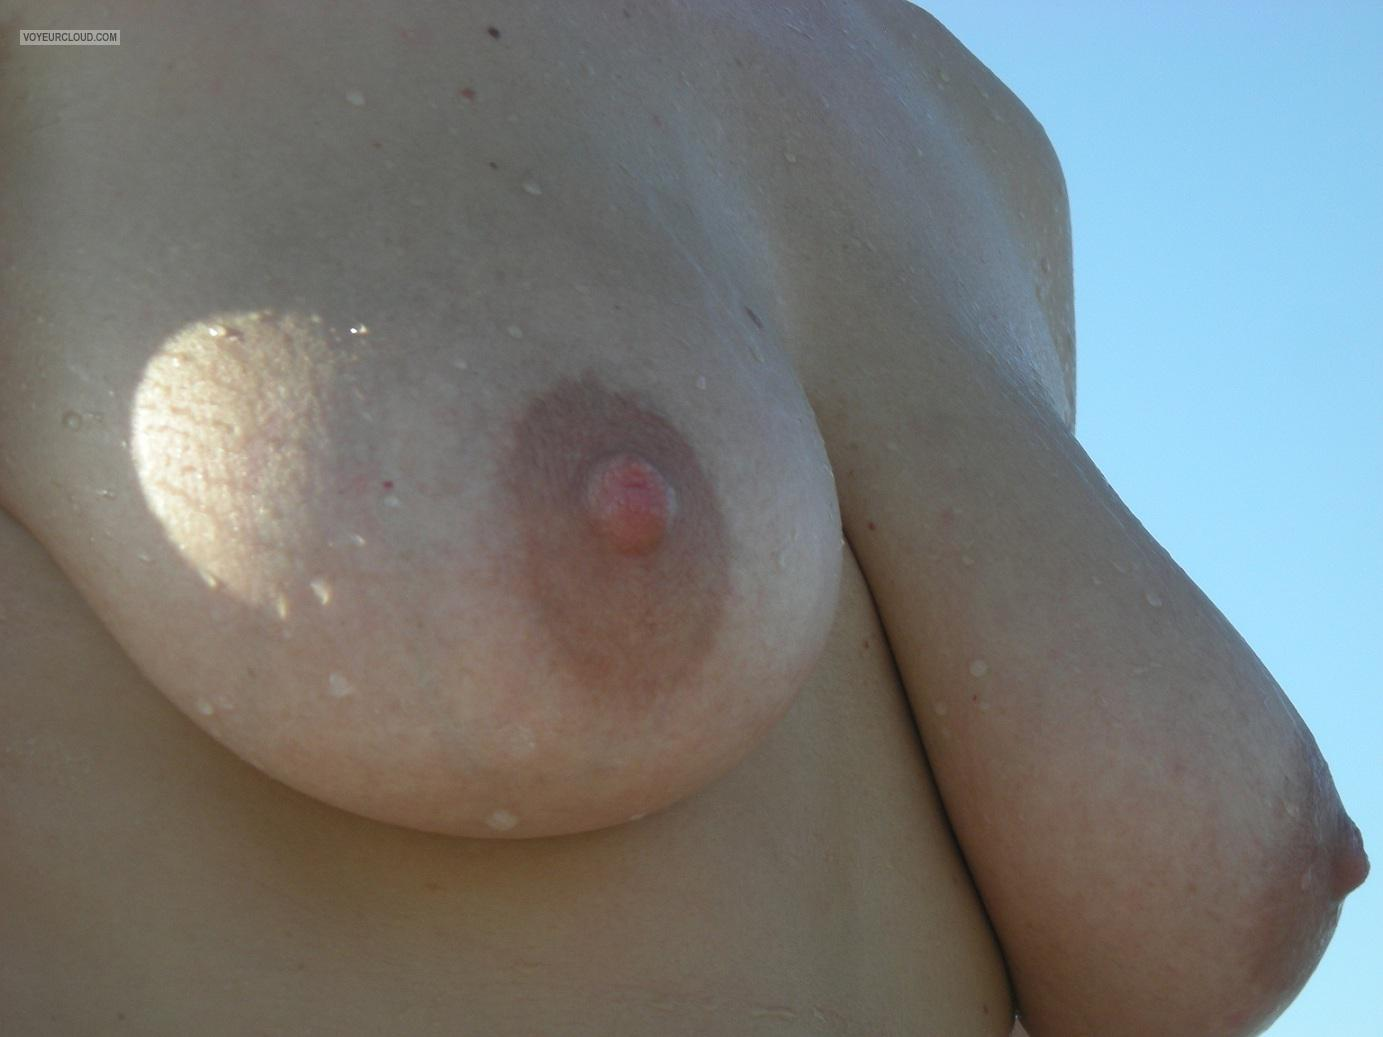 Tit Flash: Girlfriend's Medium Tits - M from Greece